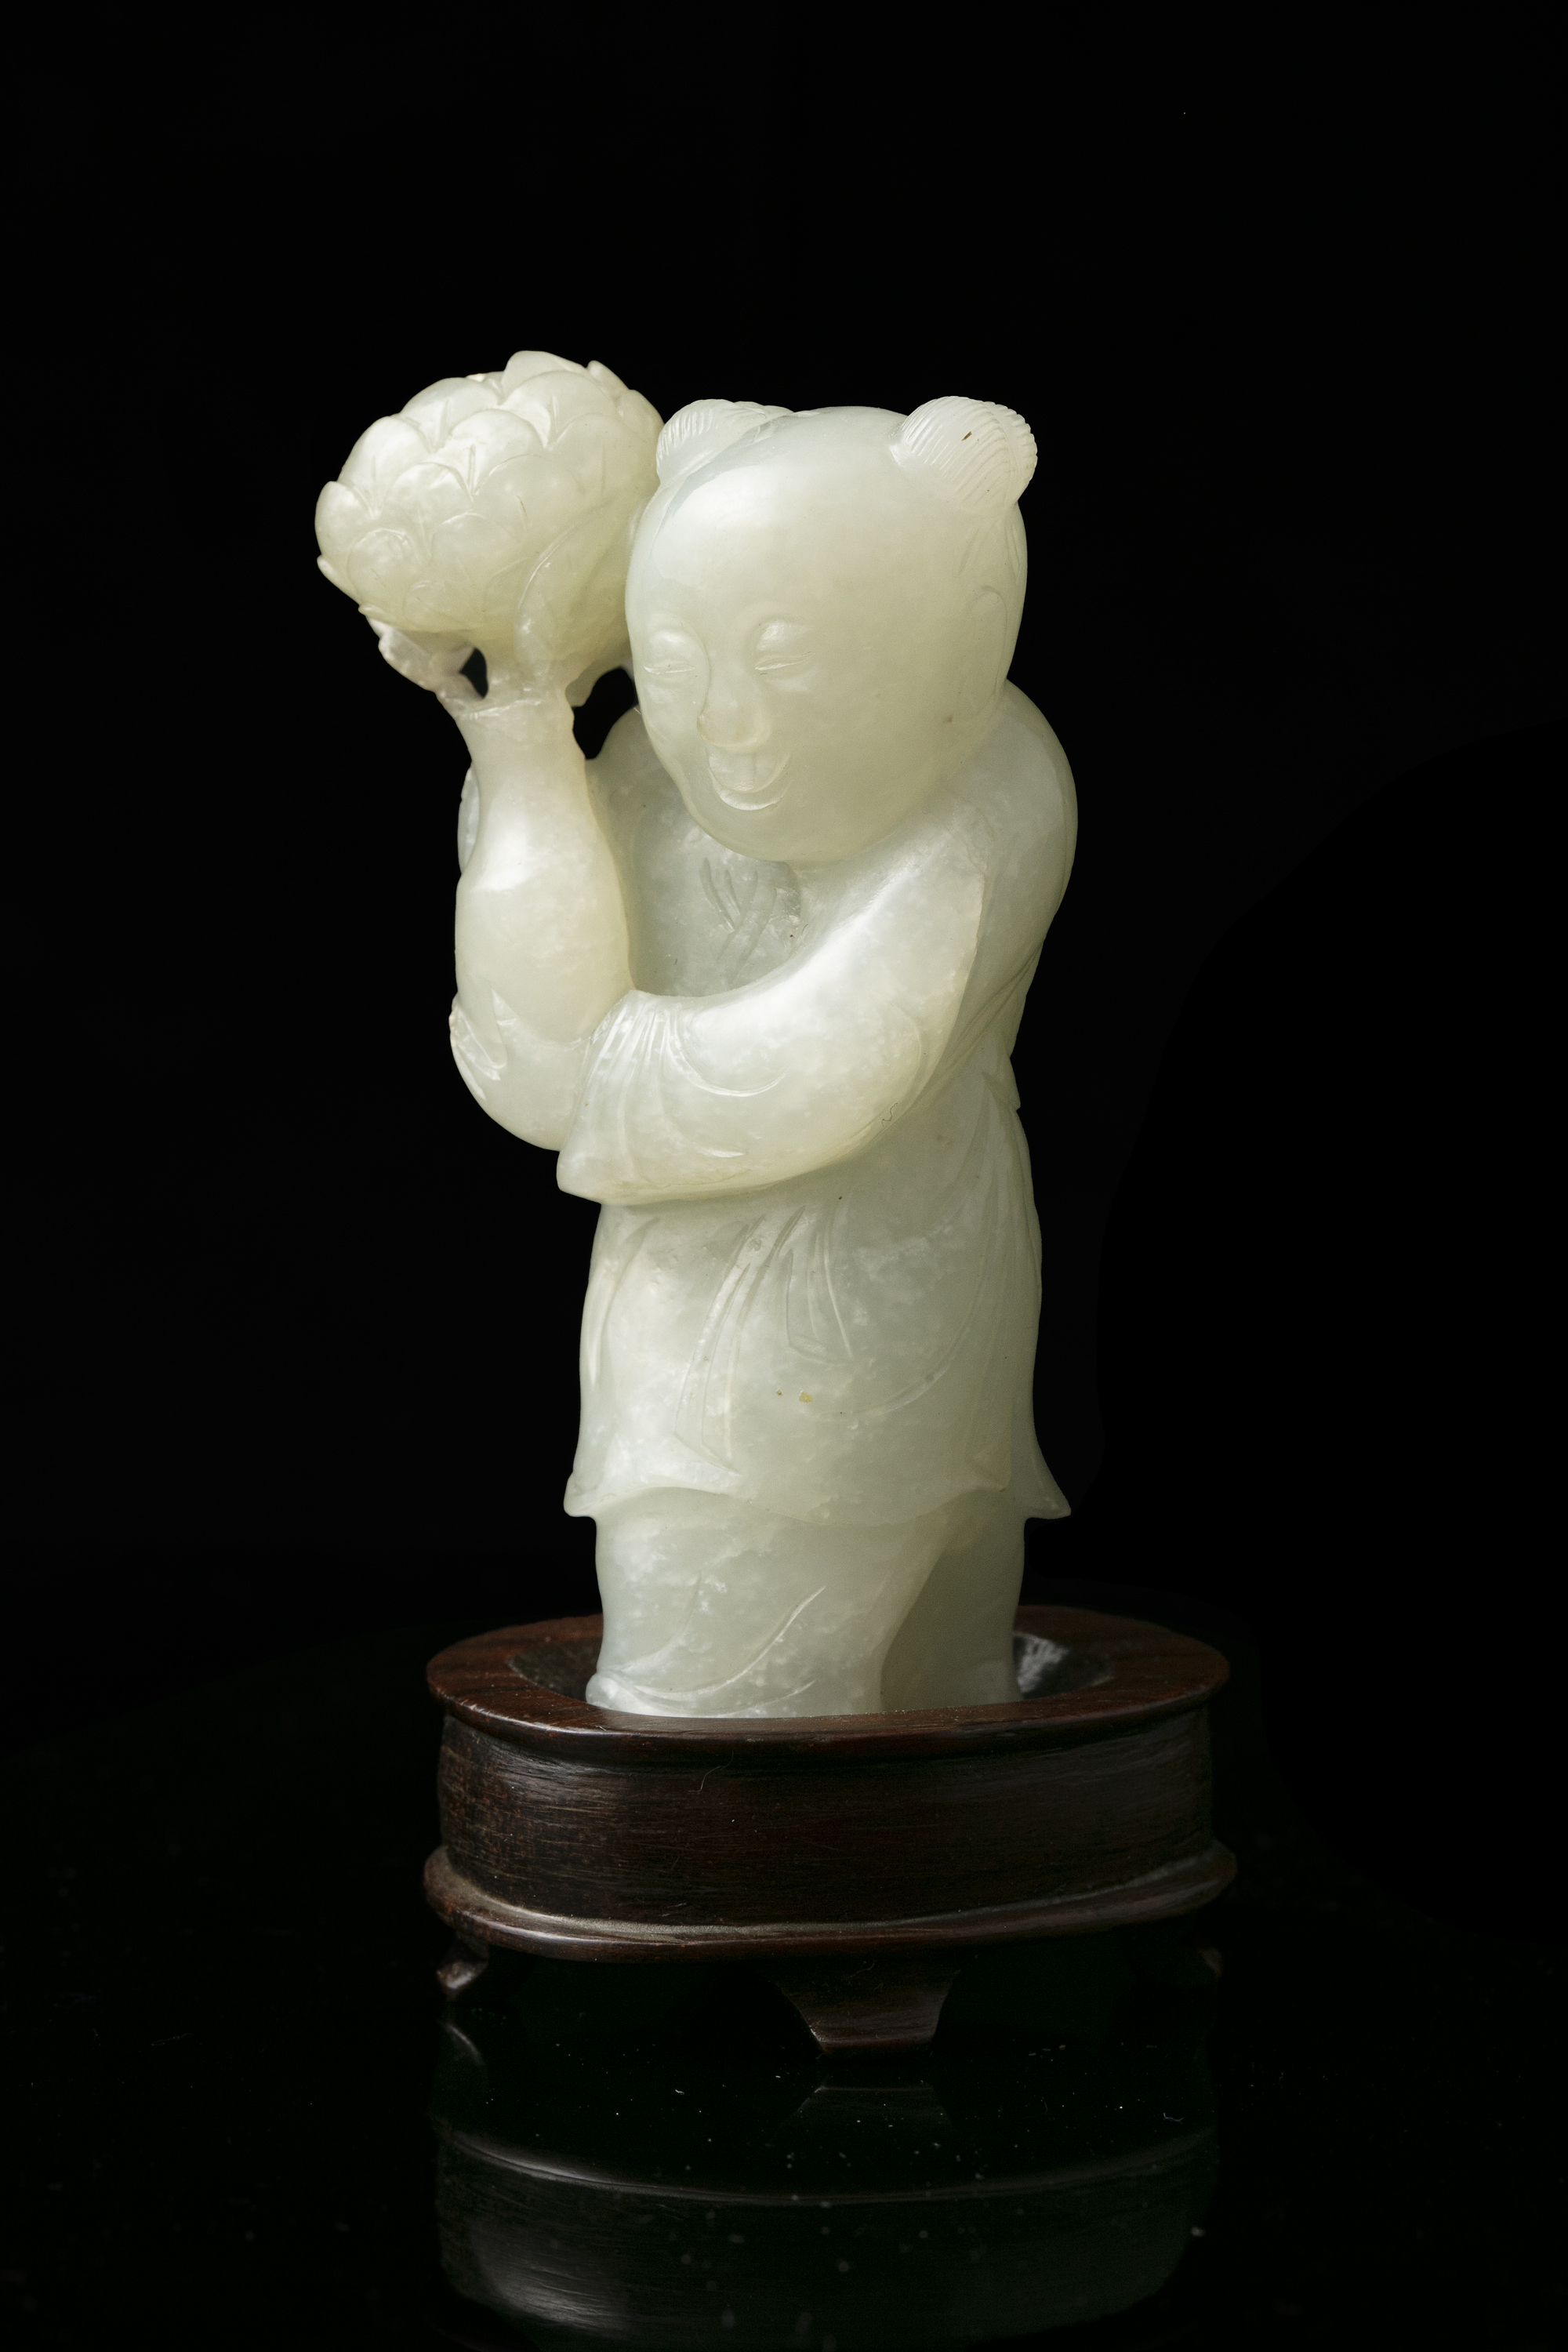 A WHITE JADE FIGURE OF A STANDING BOY WITH A LOTUS FLOWER VASE China, Qing Dynasty, 19th century - Image 2 of 14